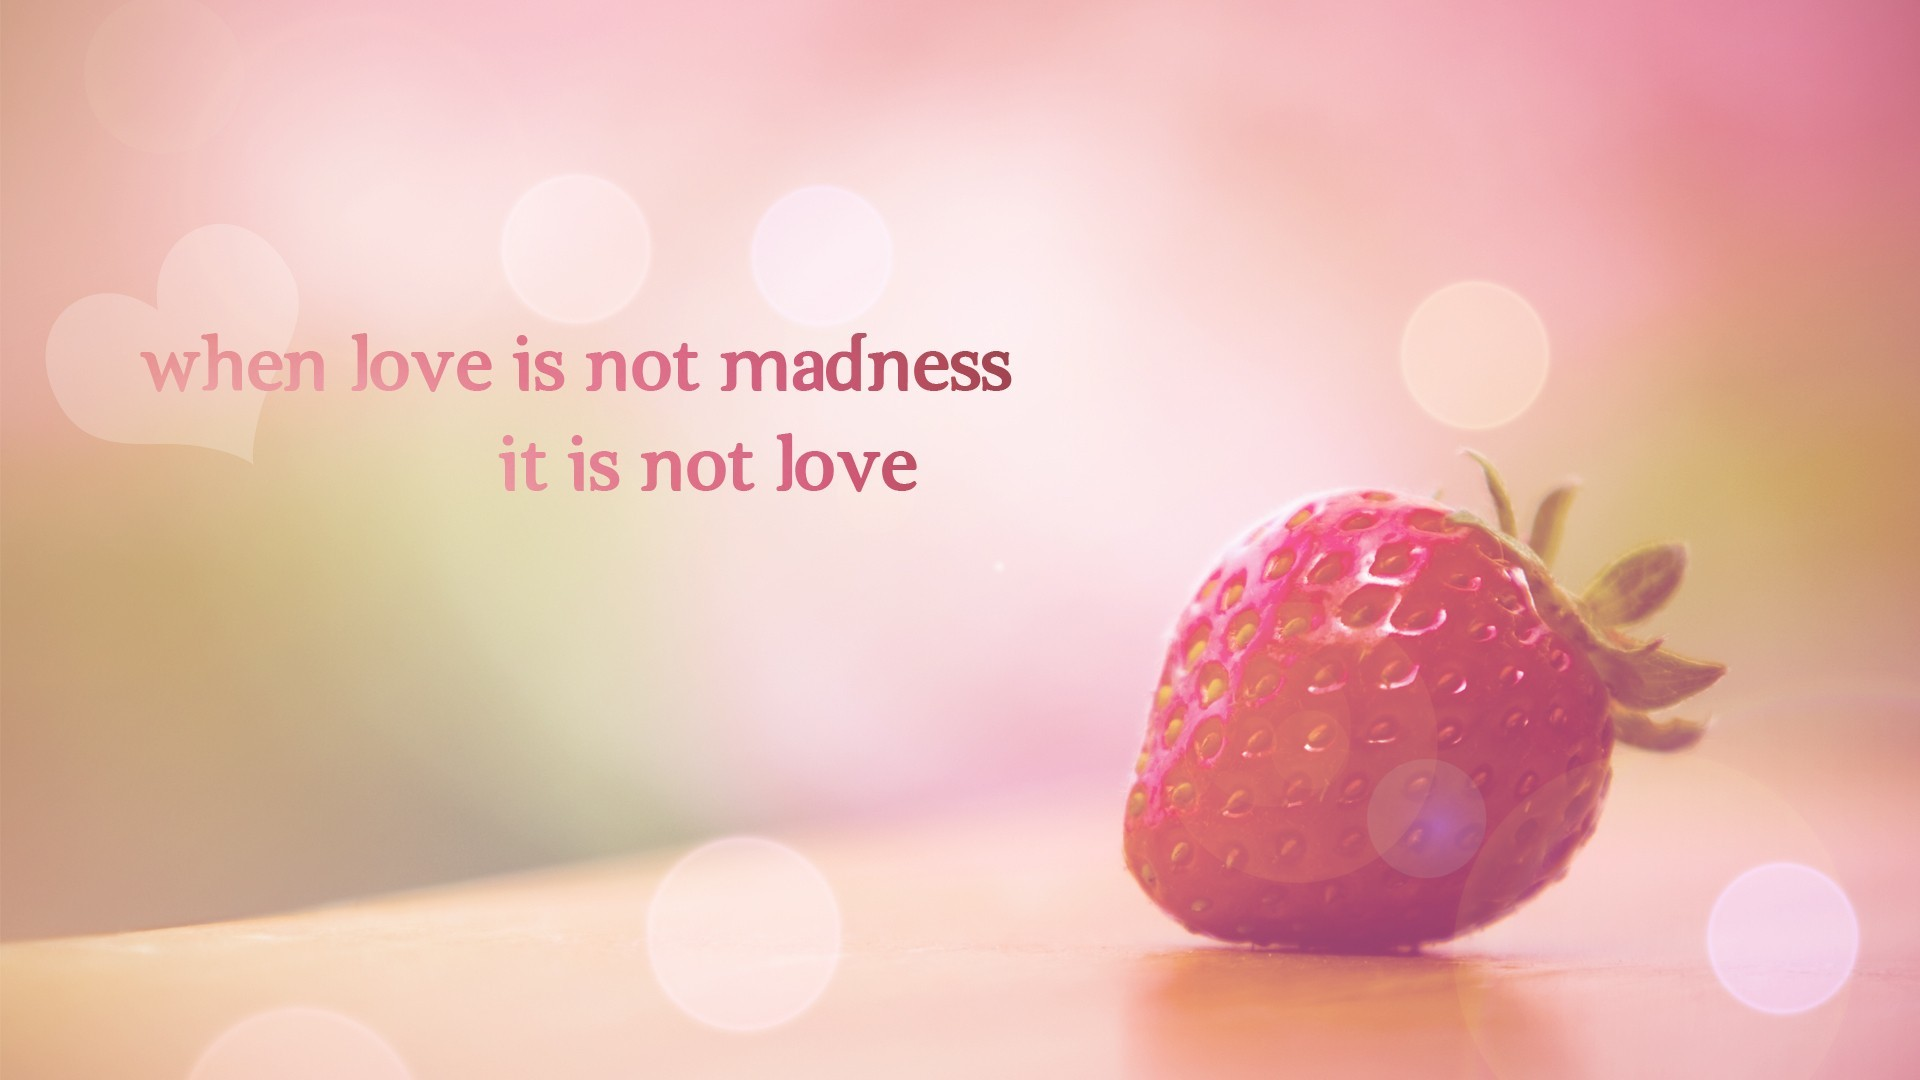 1920x1080 Wallpaper Of Quotes On Love Wallpapers Quotes For Iphone Tumblr Life1 .